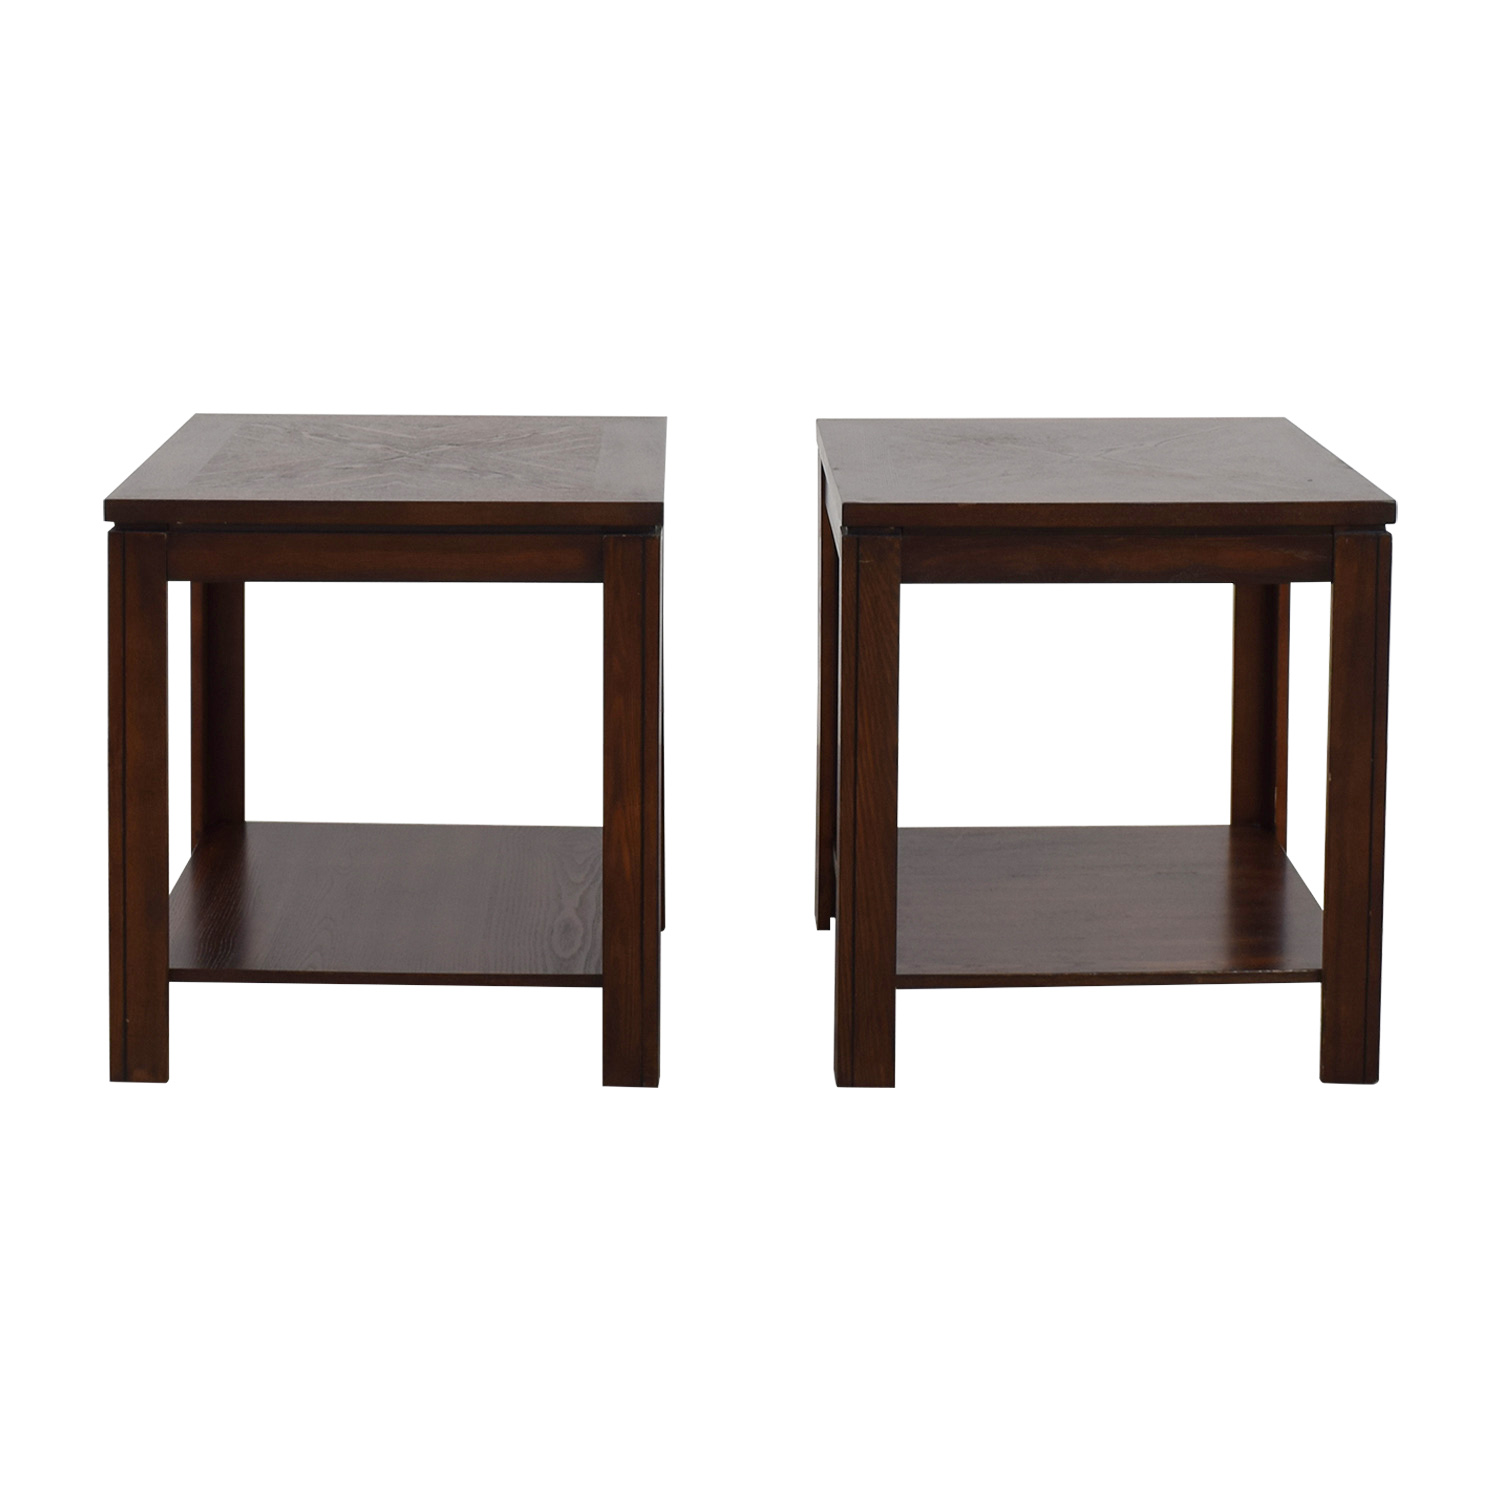 Bob's Furniture Bob's Furniture Lower Shelf End Tables for sale